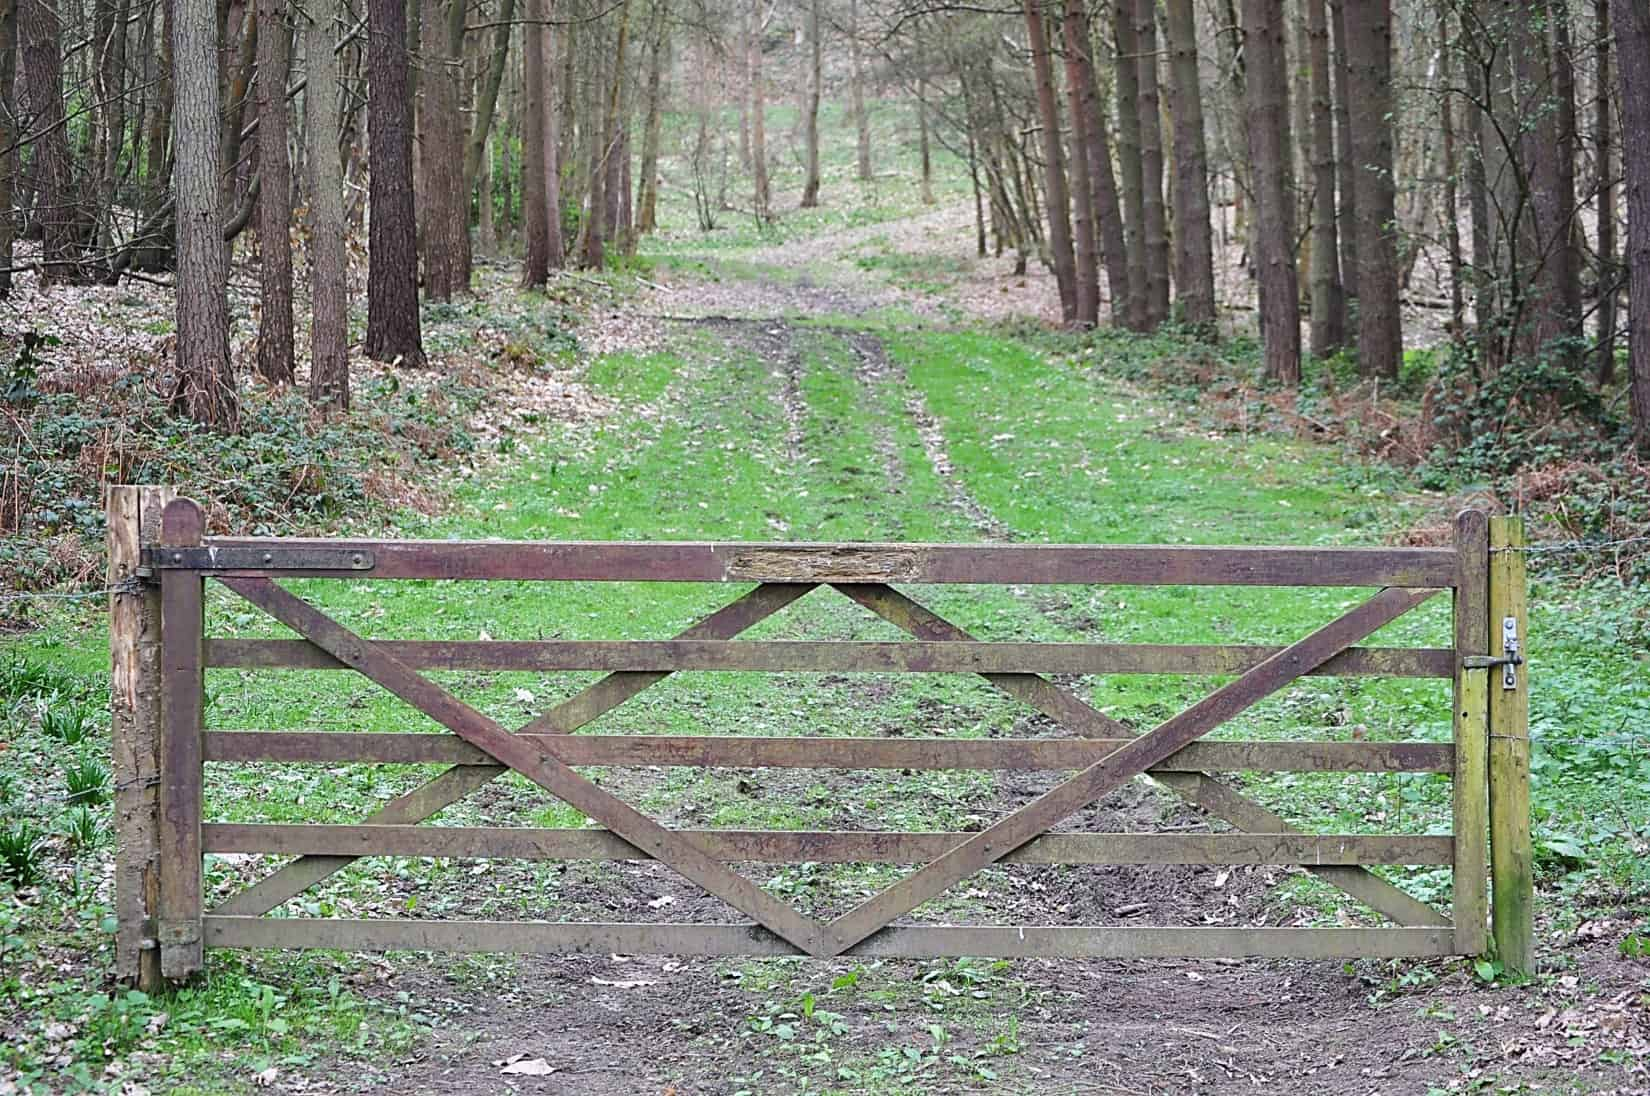 Fenced gravel road through a forest